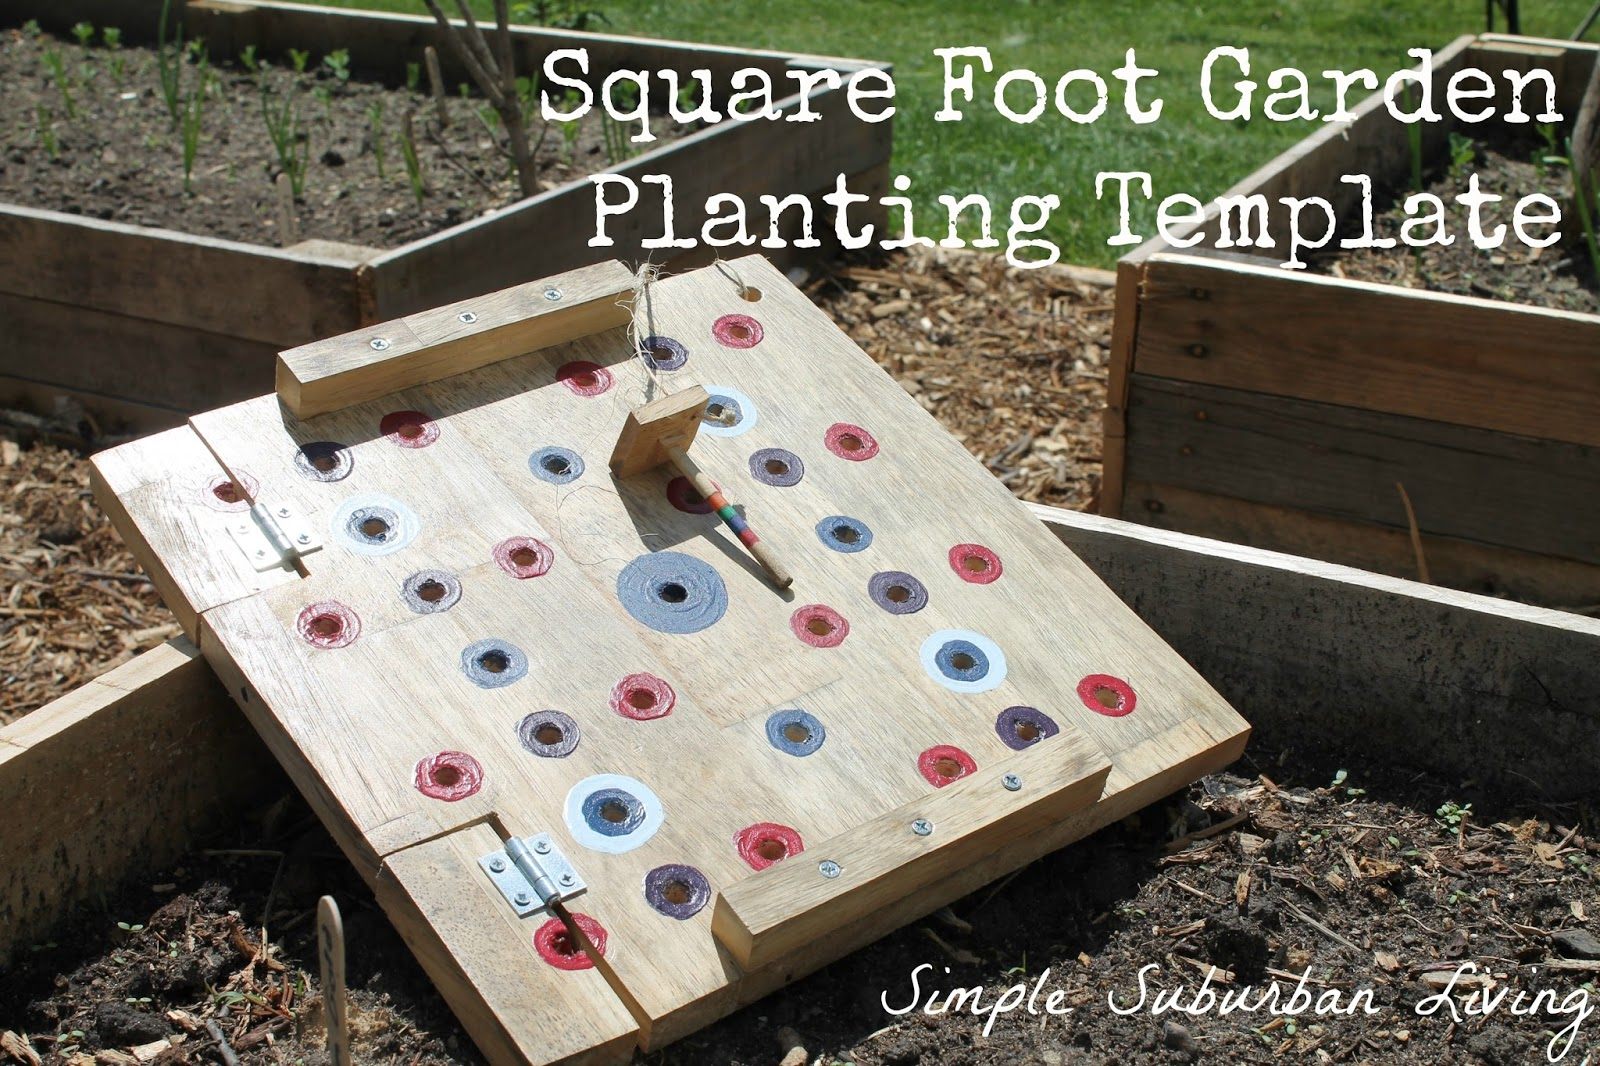 Square Foot Garden Planting Template Simple Suburban Living